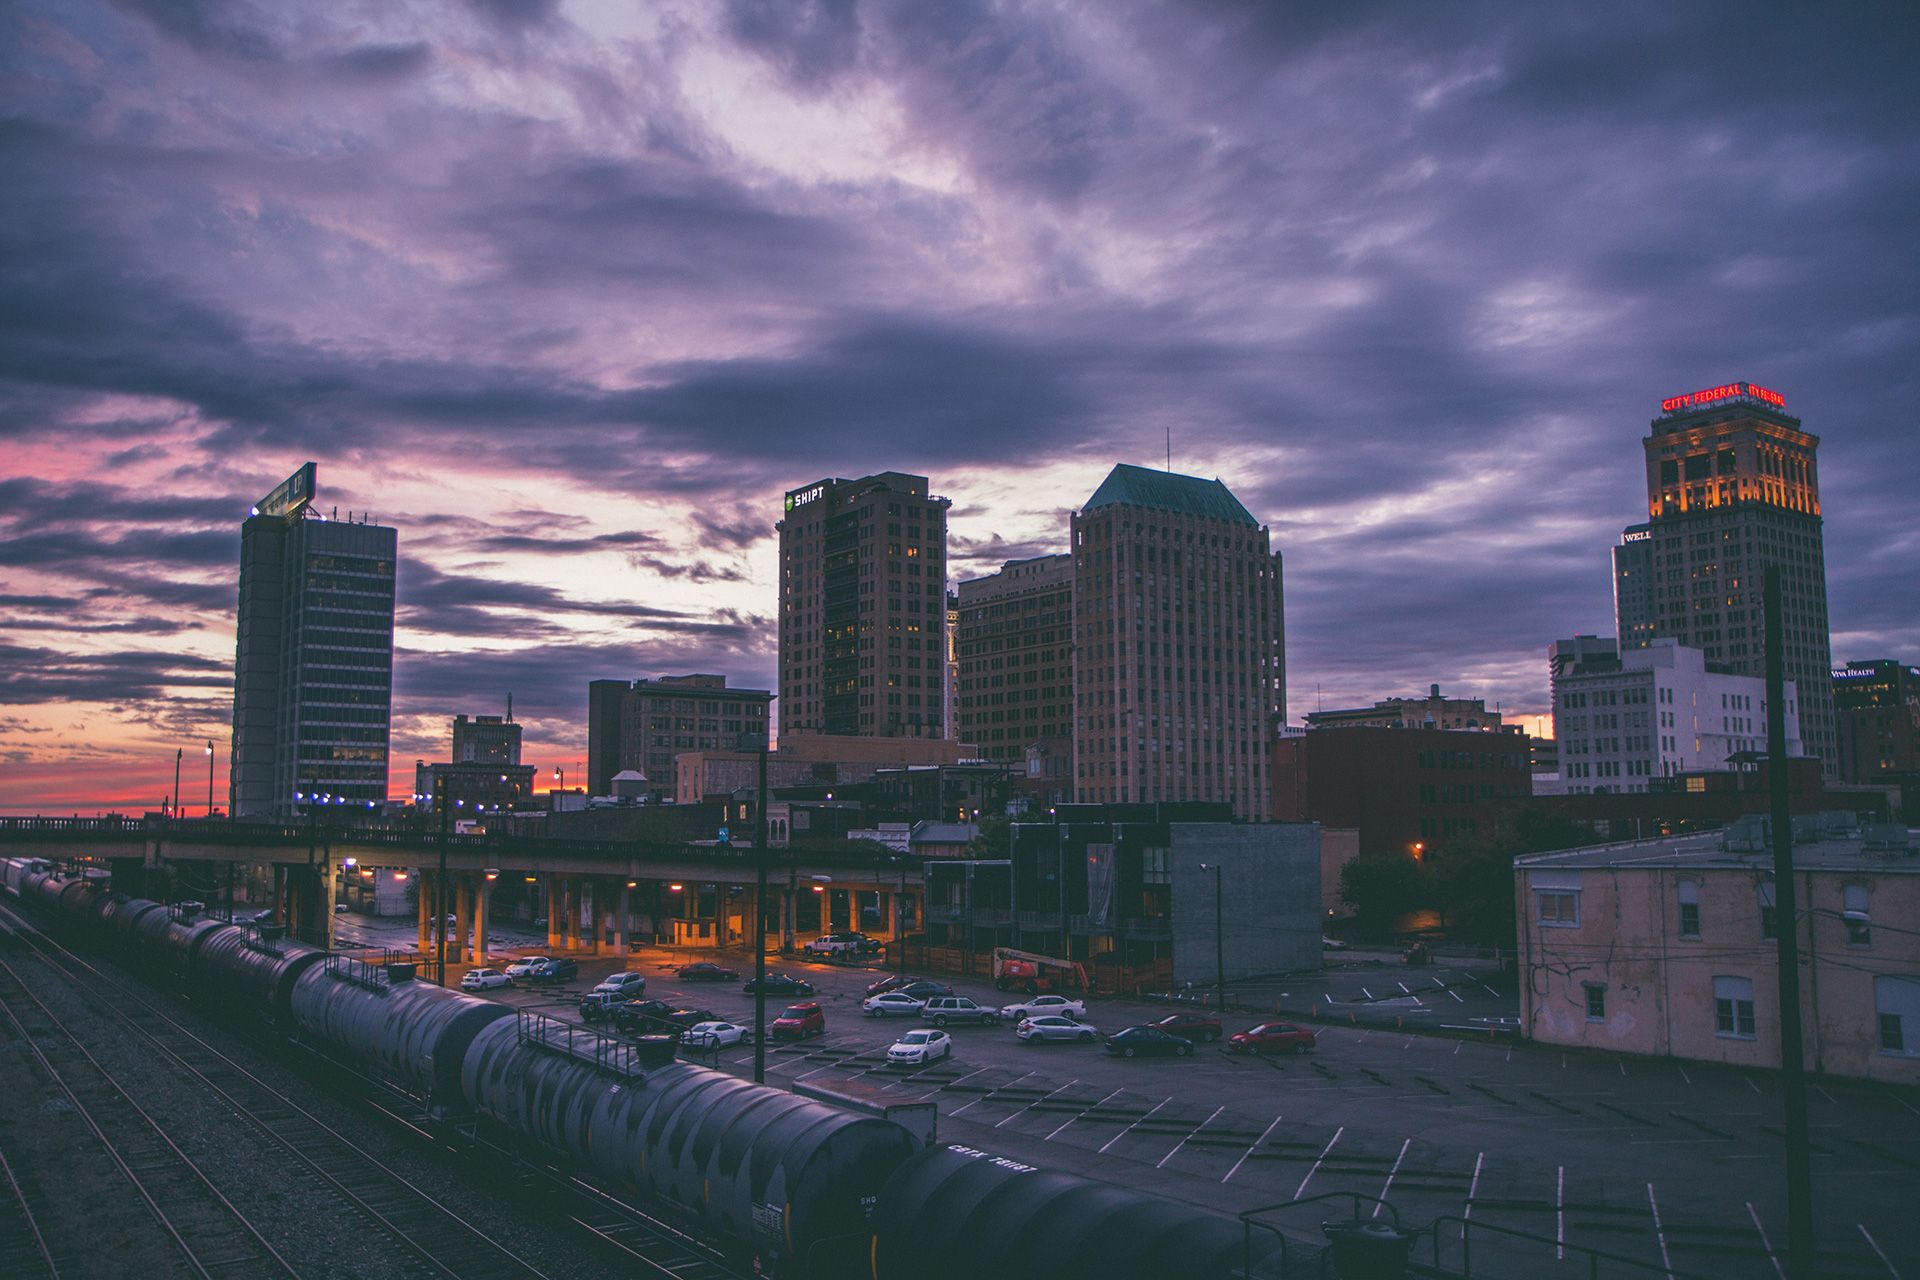 Photo of Birmingham, Alabama at dusk by Zach Searcy, from Unsplash.